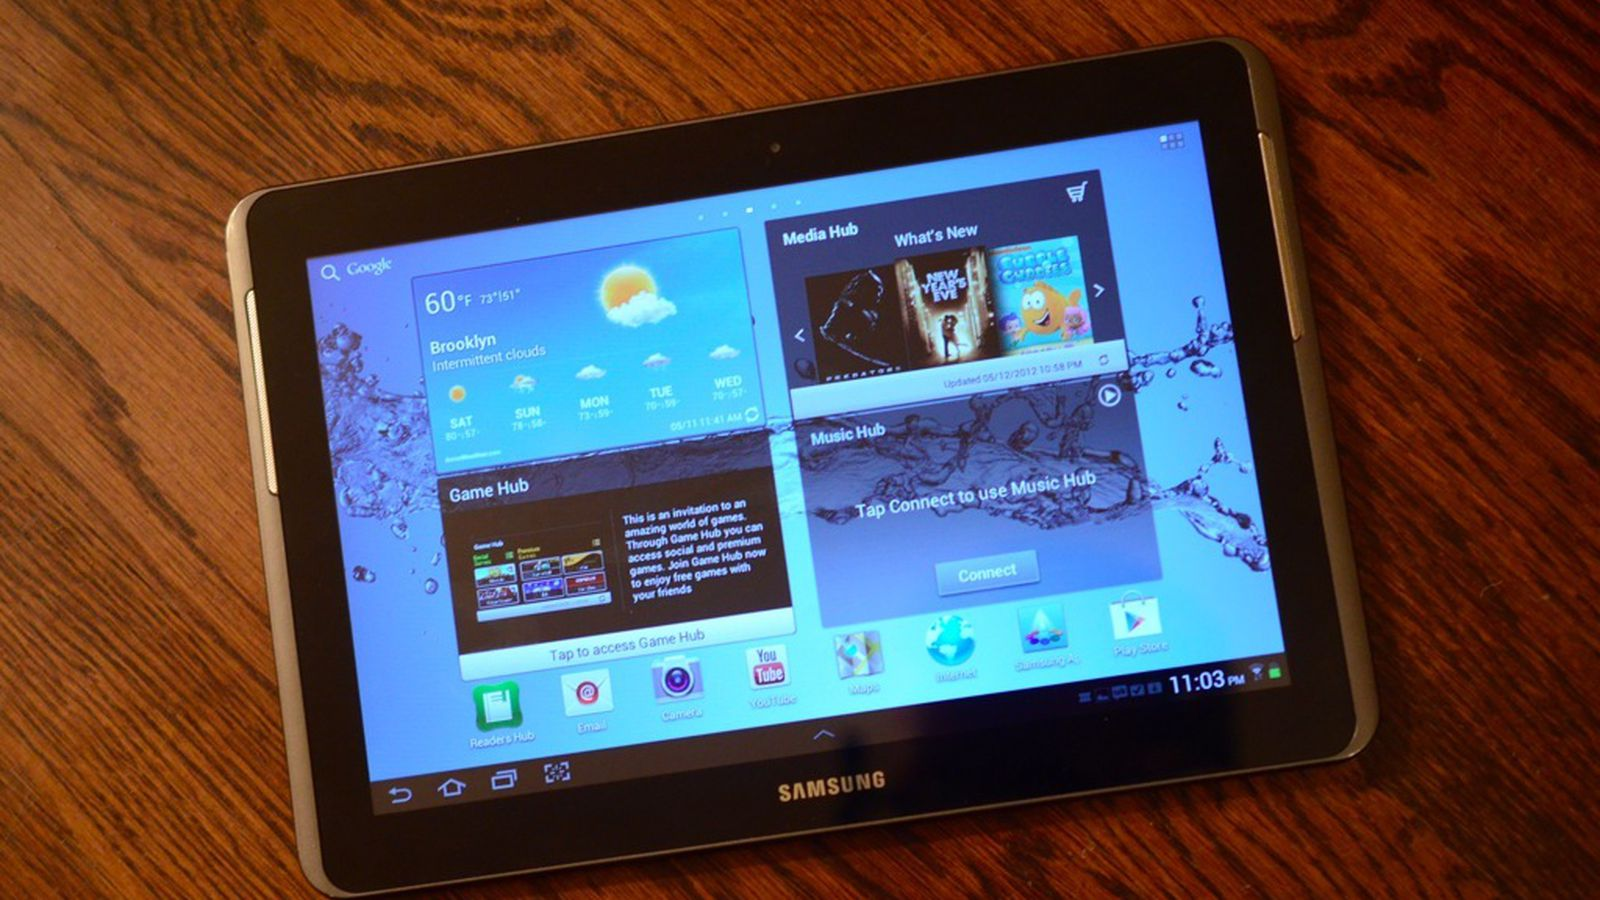 Samsung Galaxy Tab 2 10 1 Review The Verge